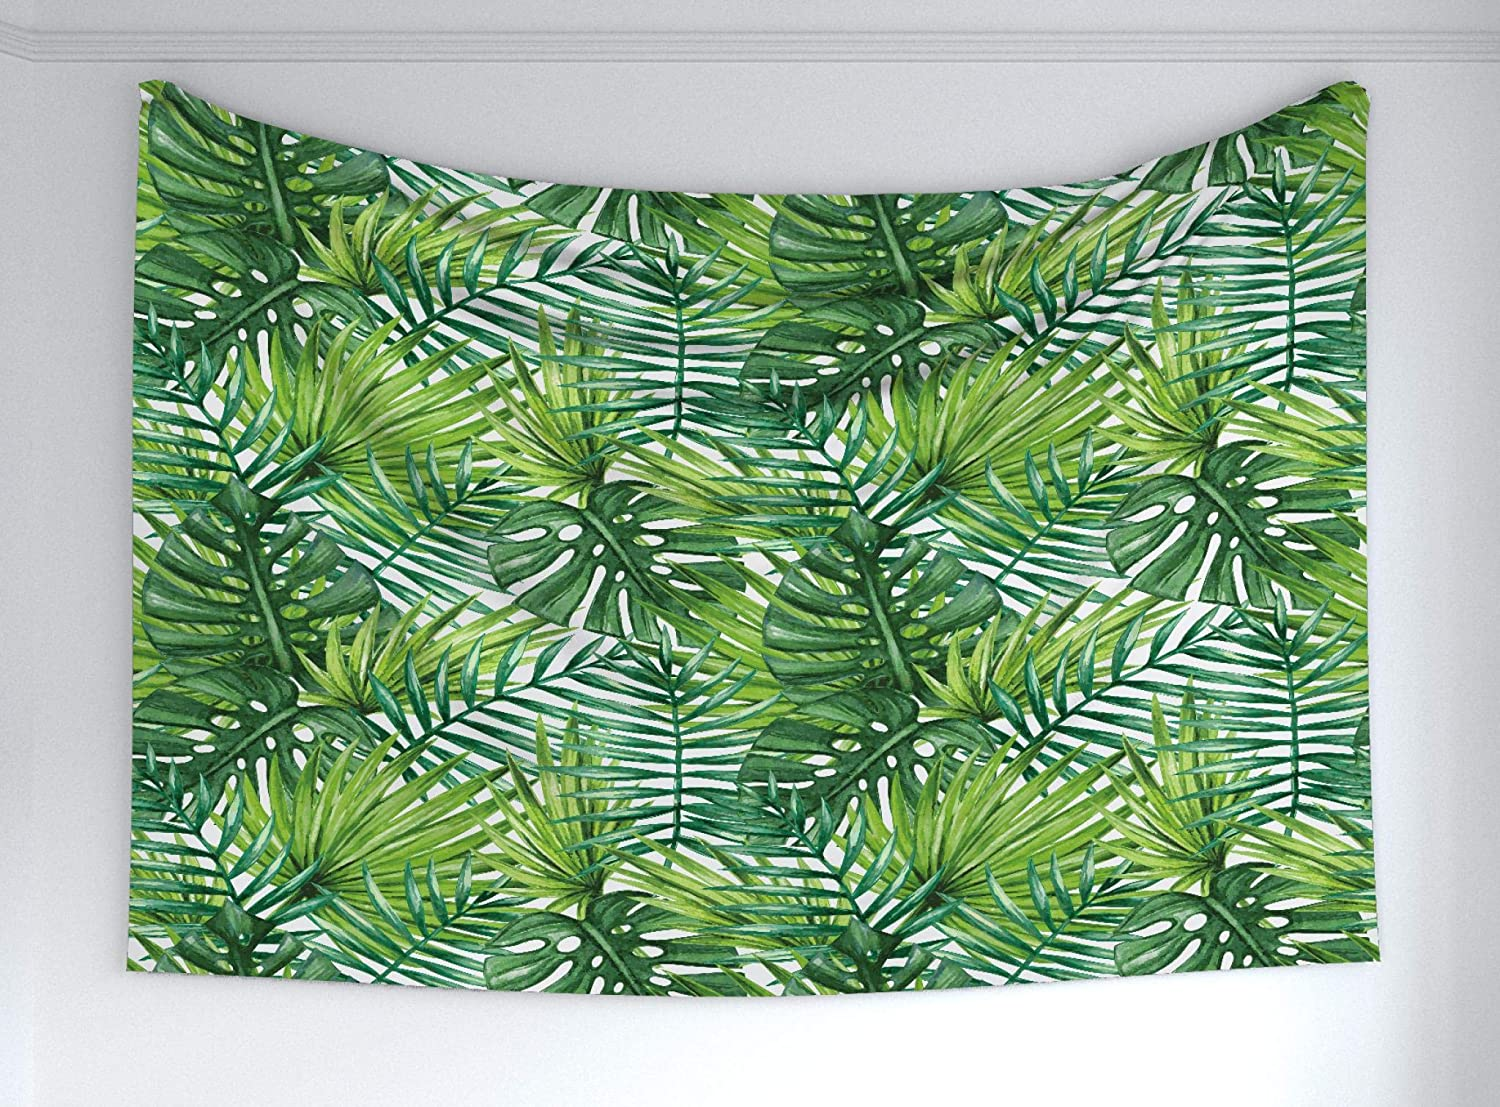 Amazon Com Ambesonne Leaf Tapestry Tropical Exotic Banana Forest Palm Tree Leaves Watercolor Design Image Fabric Wall Hanging Decor For Bedroom Living Room Dorm 60 X 40 Green Home Kitchen Tropical looking plants (exotic plants that make you believe you are in the tropics). ambesonne leaf tapestry tropical exotic banana forest palm tree leaves watercolor design image fabric wall hanging decor for bedroom living room